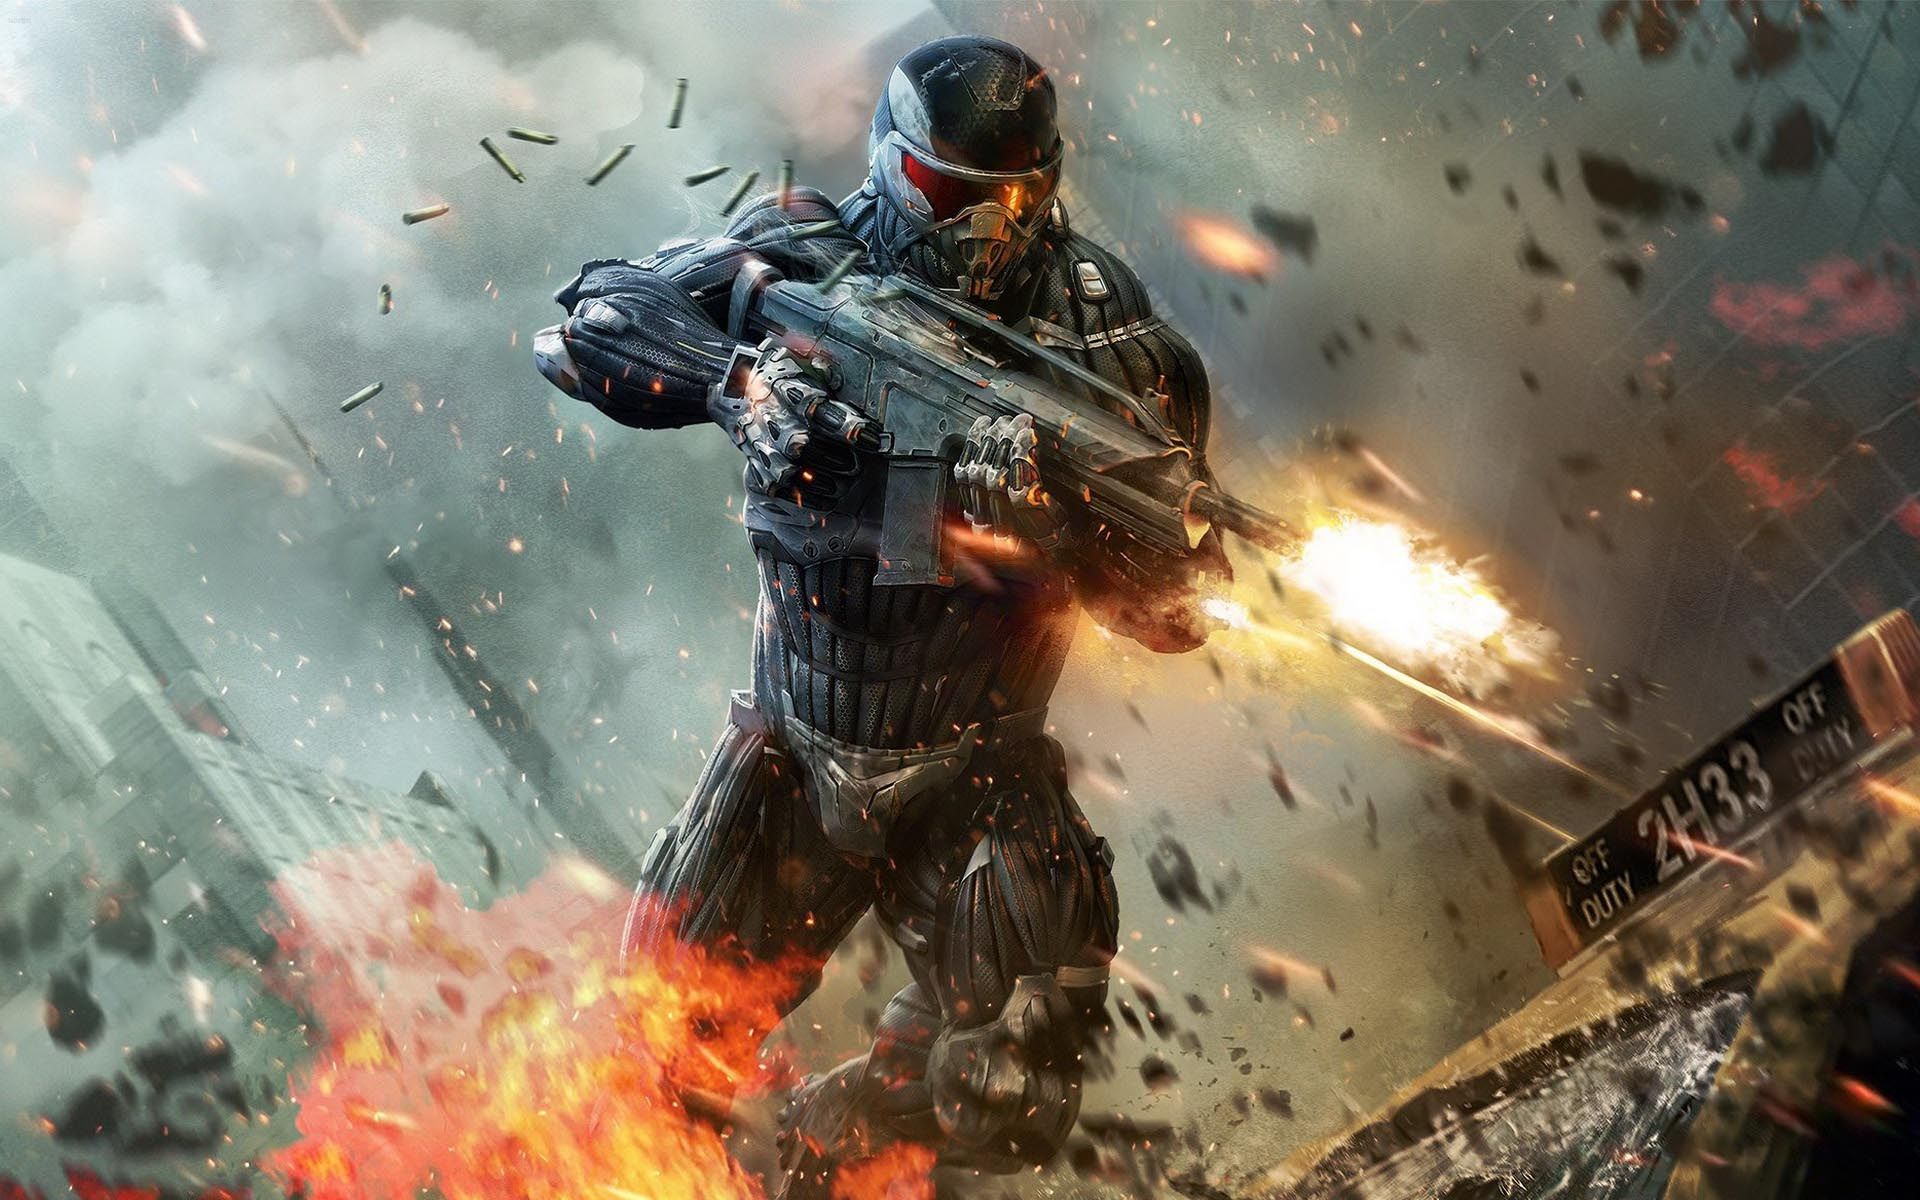 crysis hd wallpapers and backgrounds crysis wallpaper wallpapers